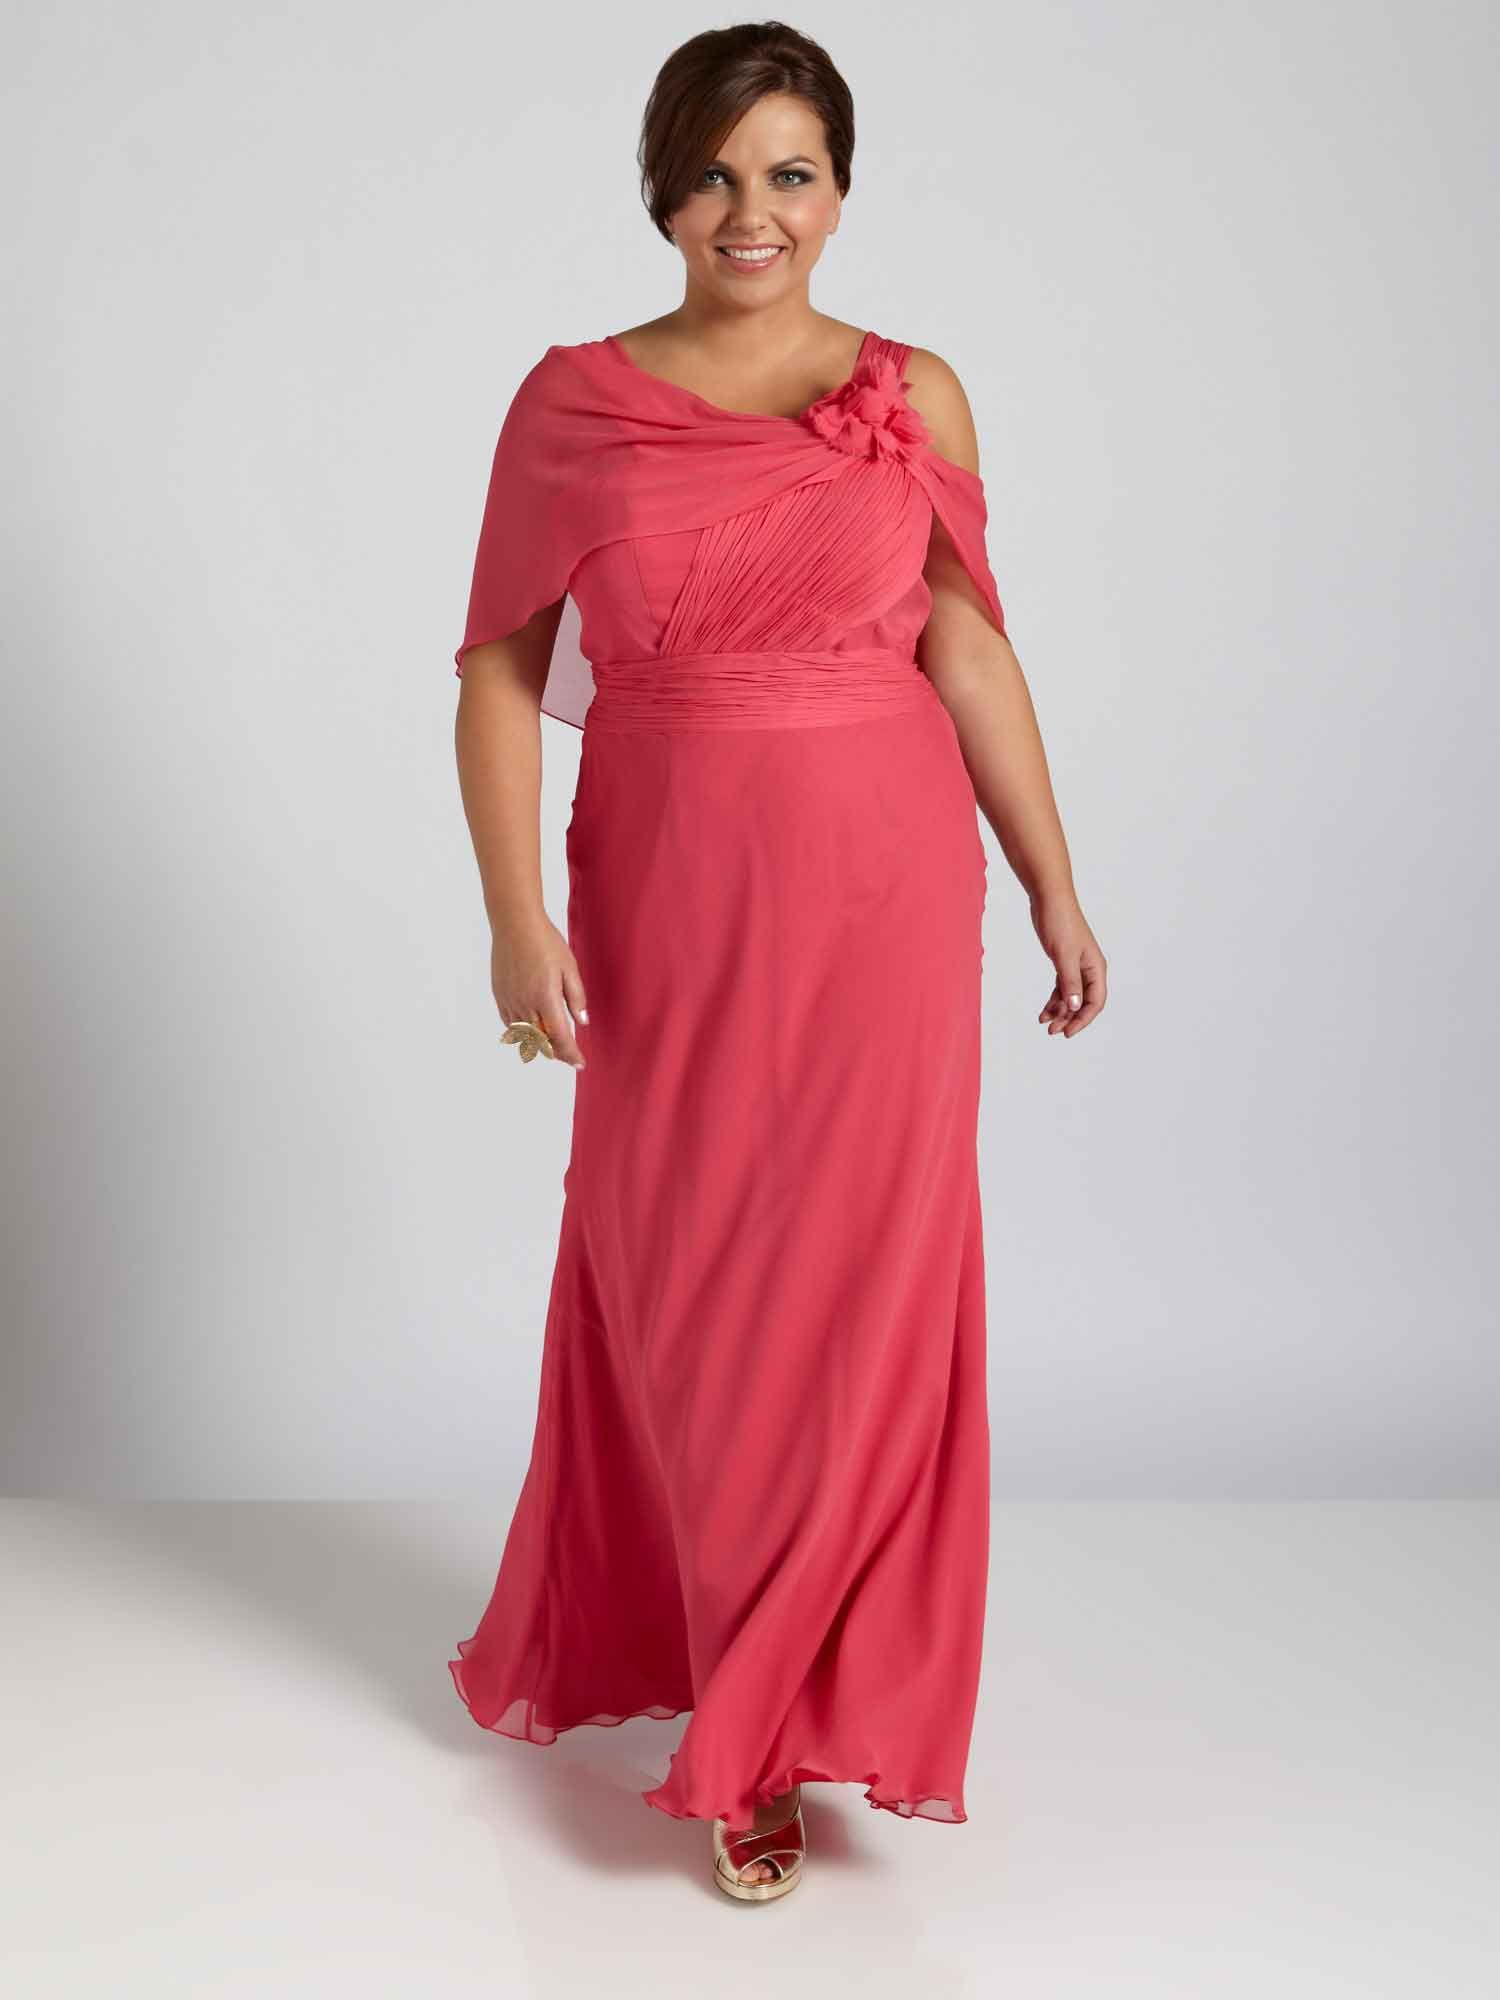 Plus Size Mother Of The Bride Dresses Online Canada - raveitsafe